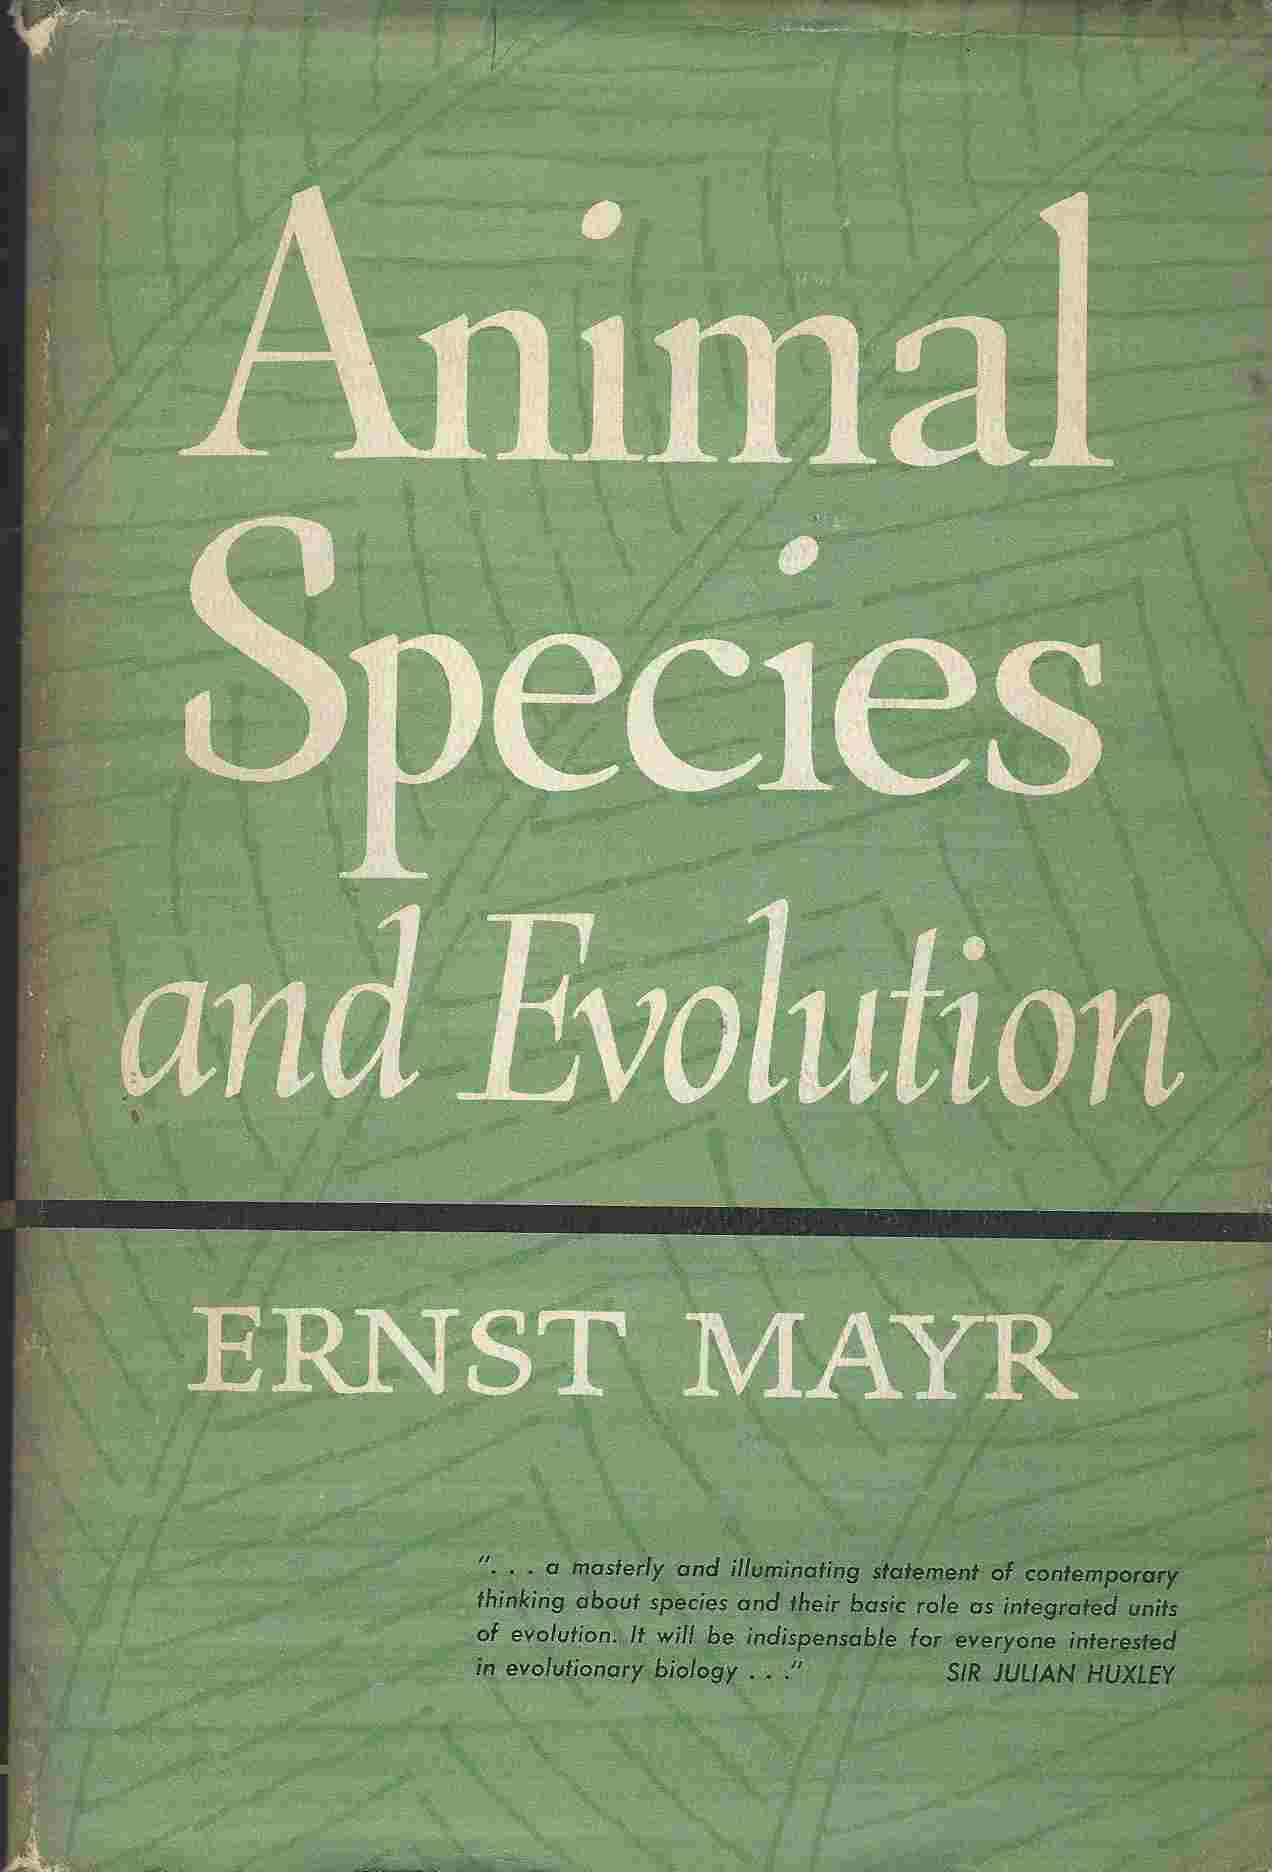 Image for Animal Species and Evolution by Ernst Mayr